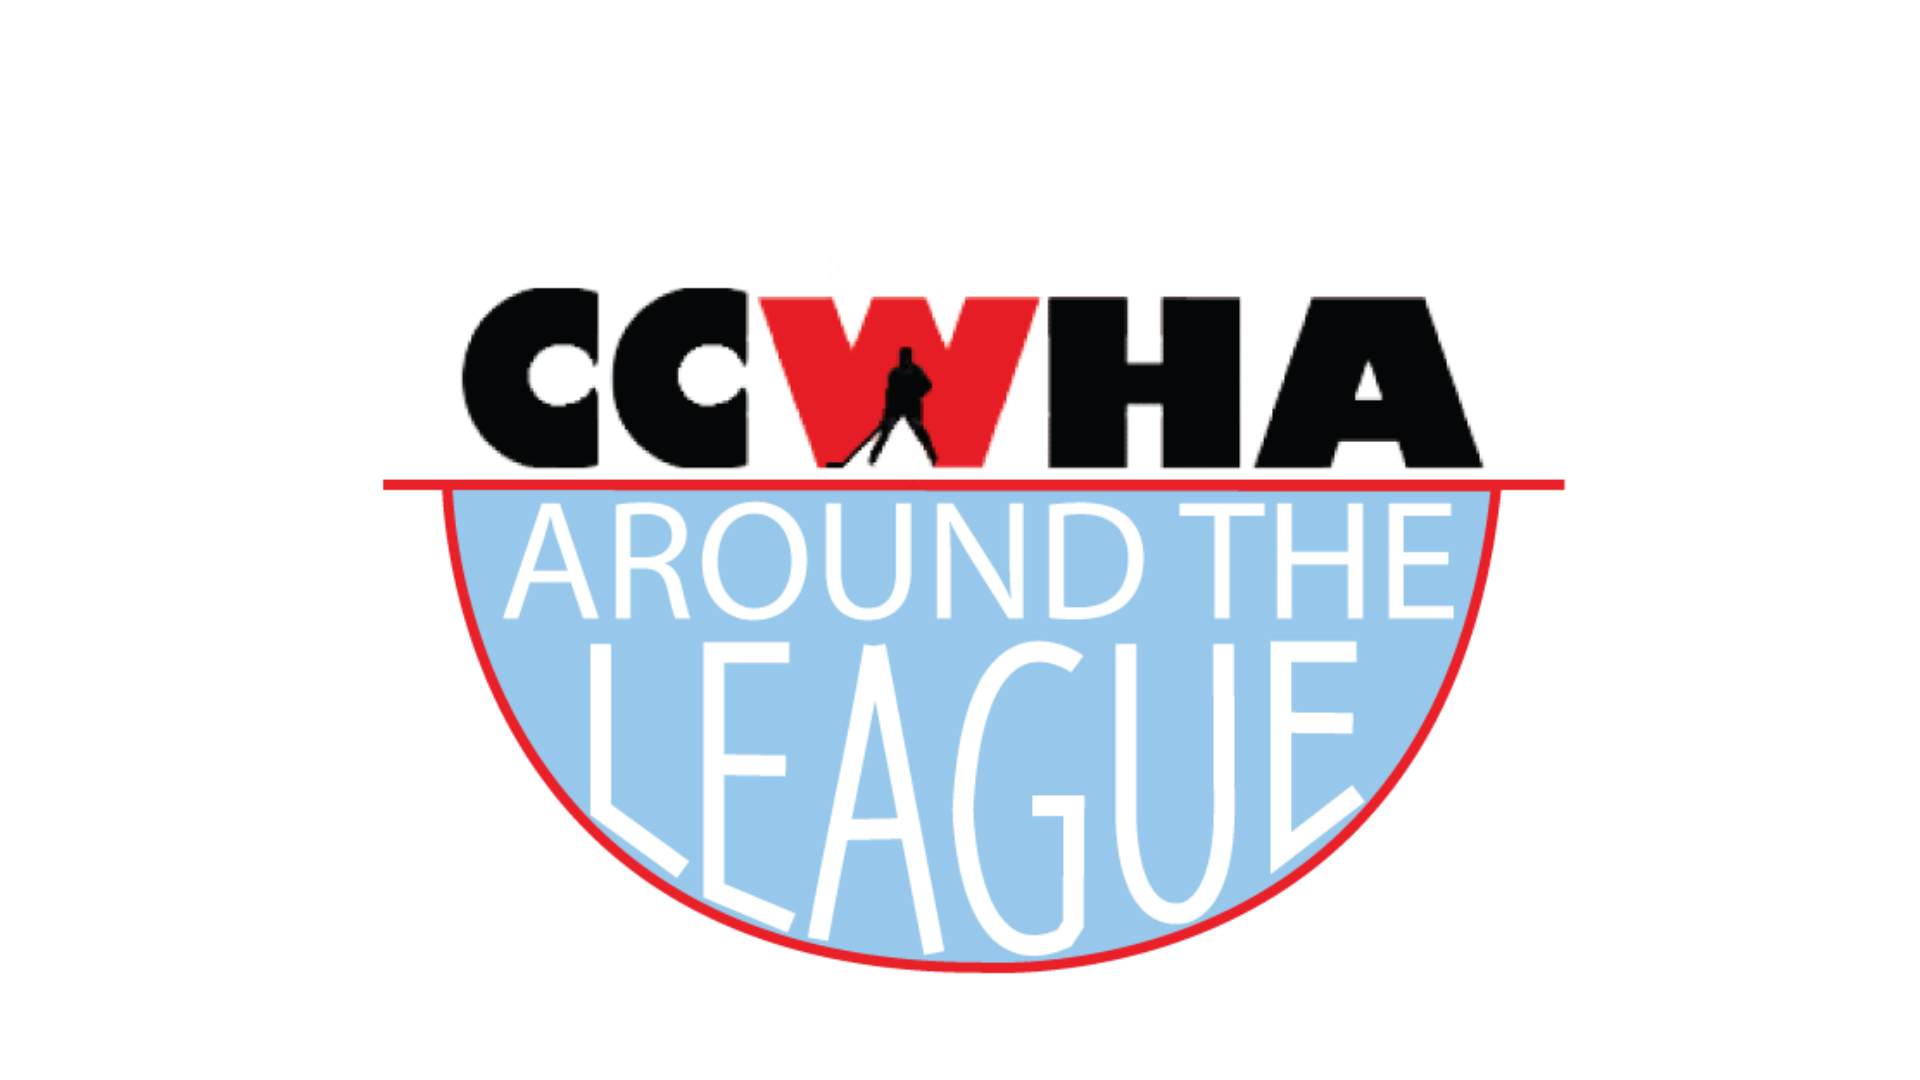 Around The League : 10.13 – 10.14